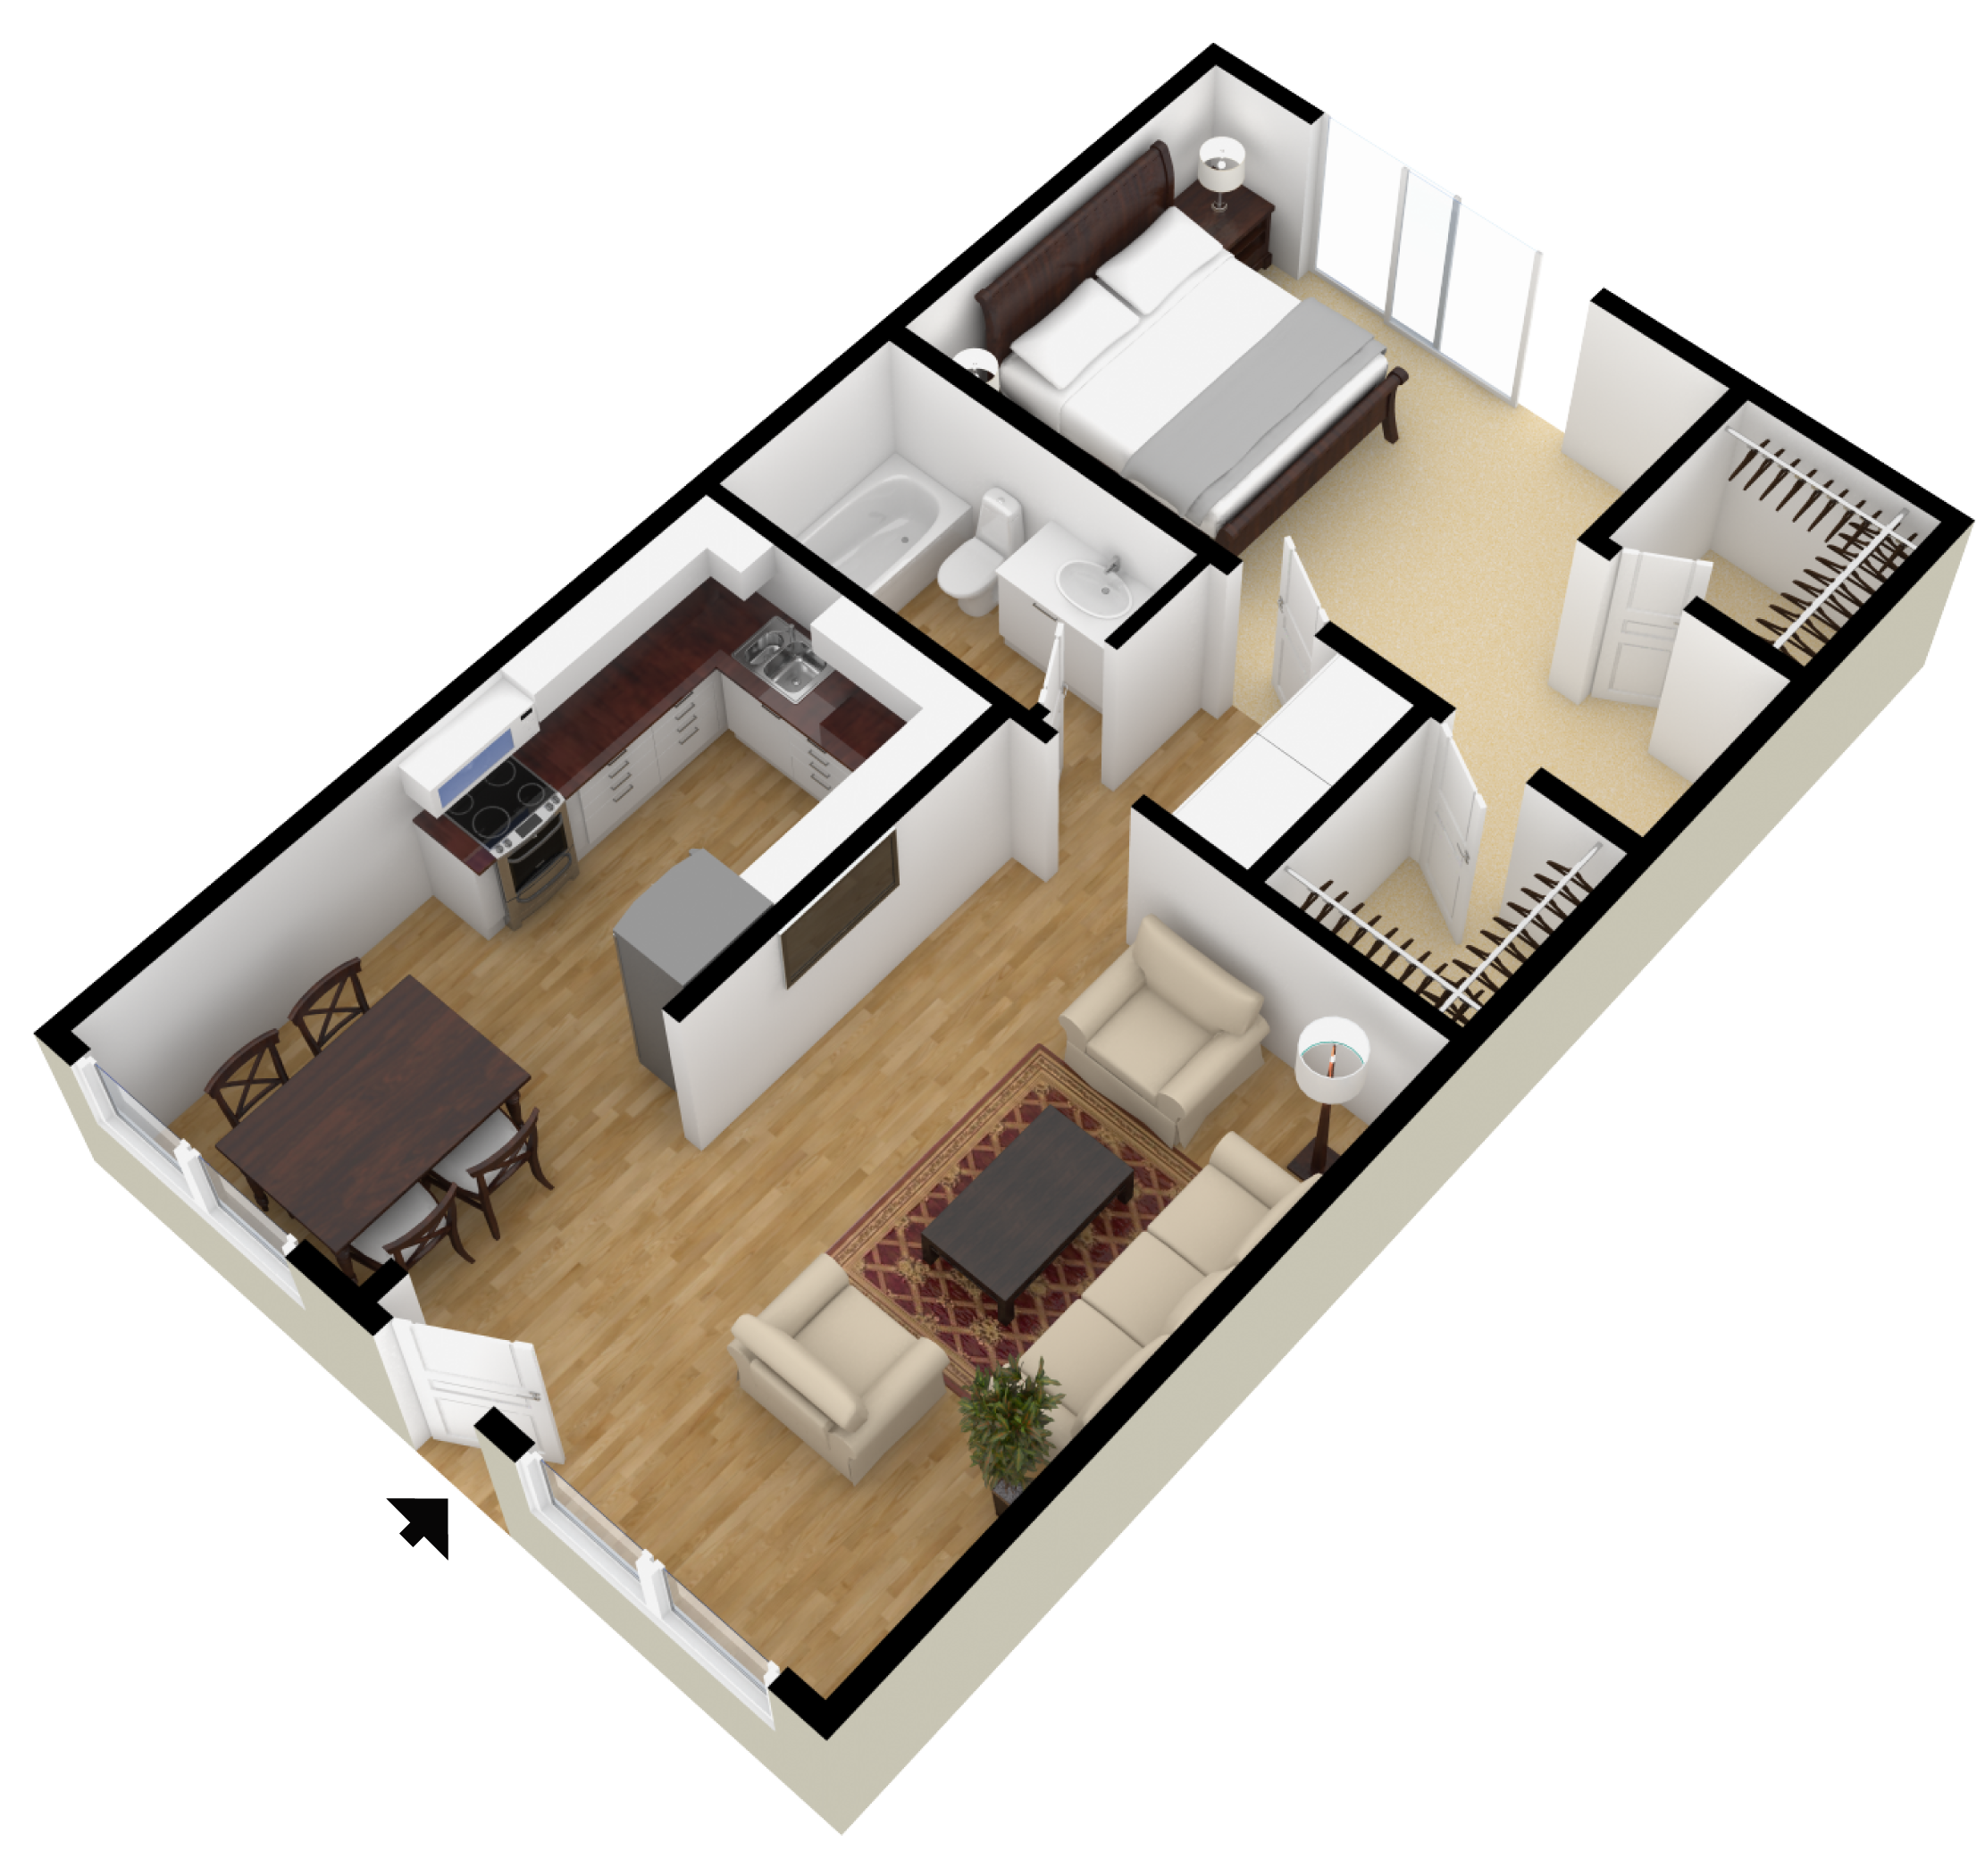 Studio 1 2 bedroom floor plans city plaza apartments for Studio apartment blueprints